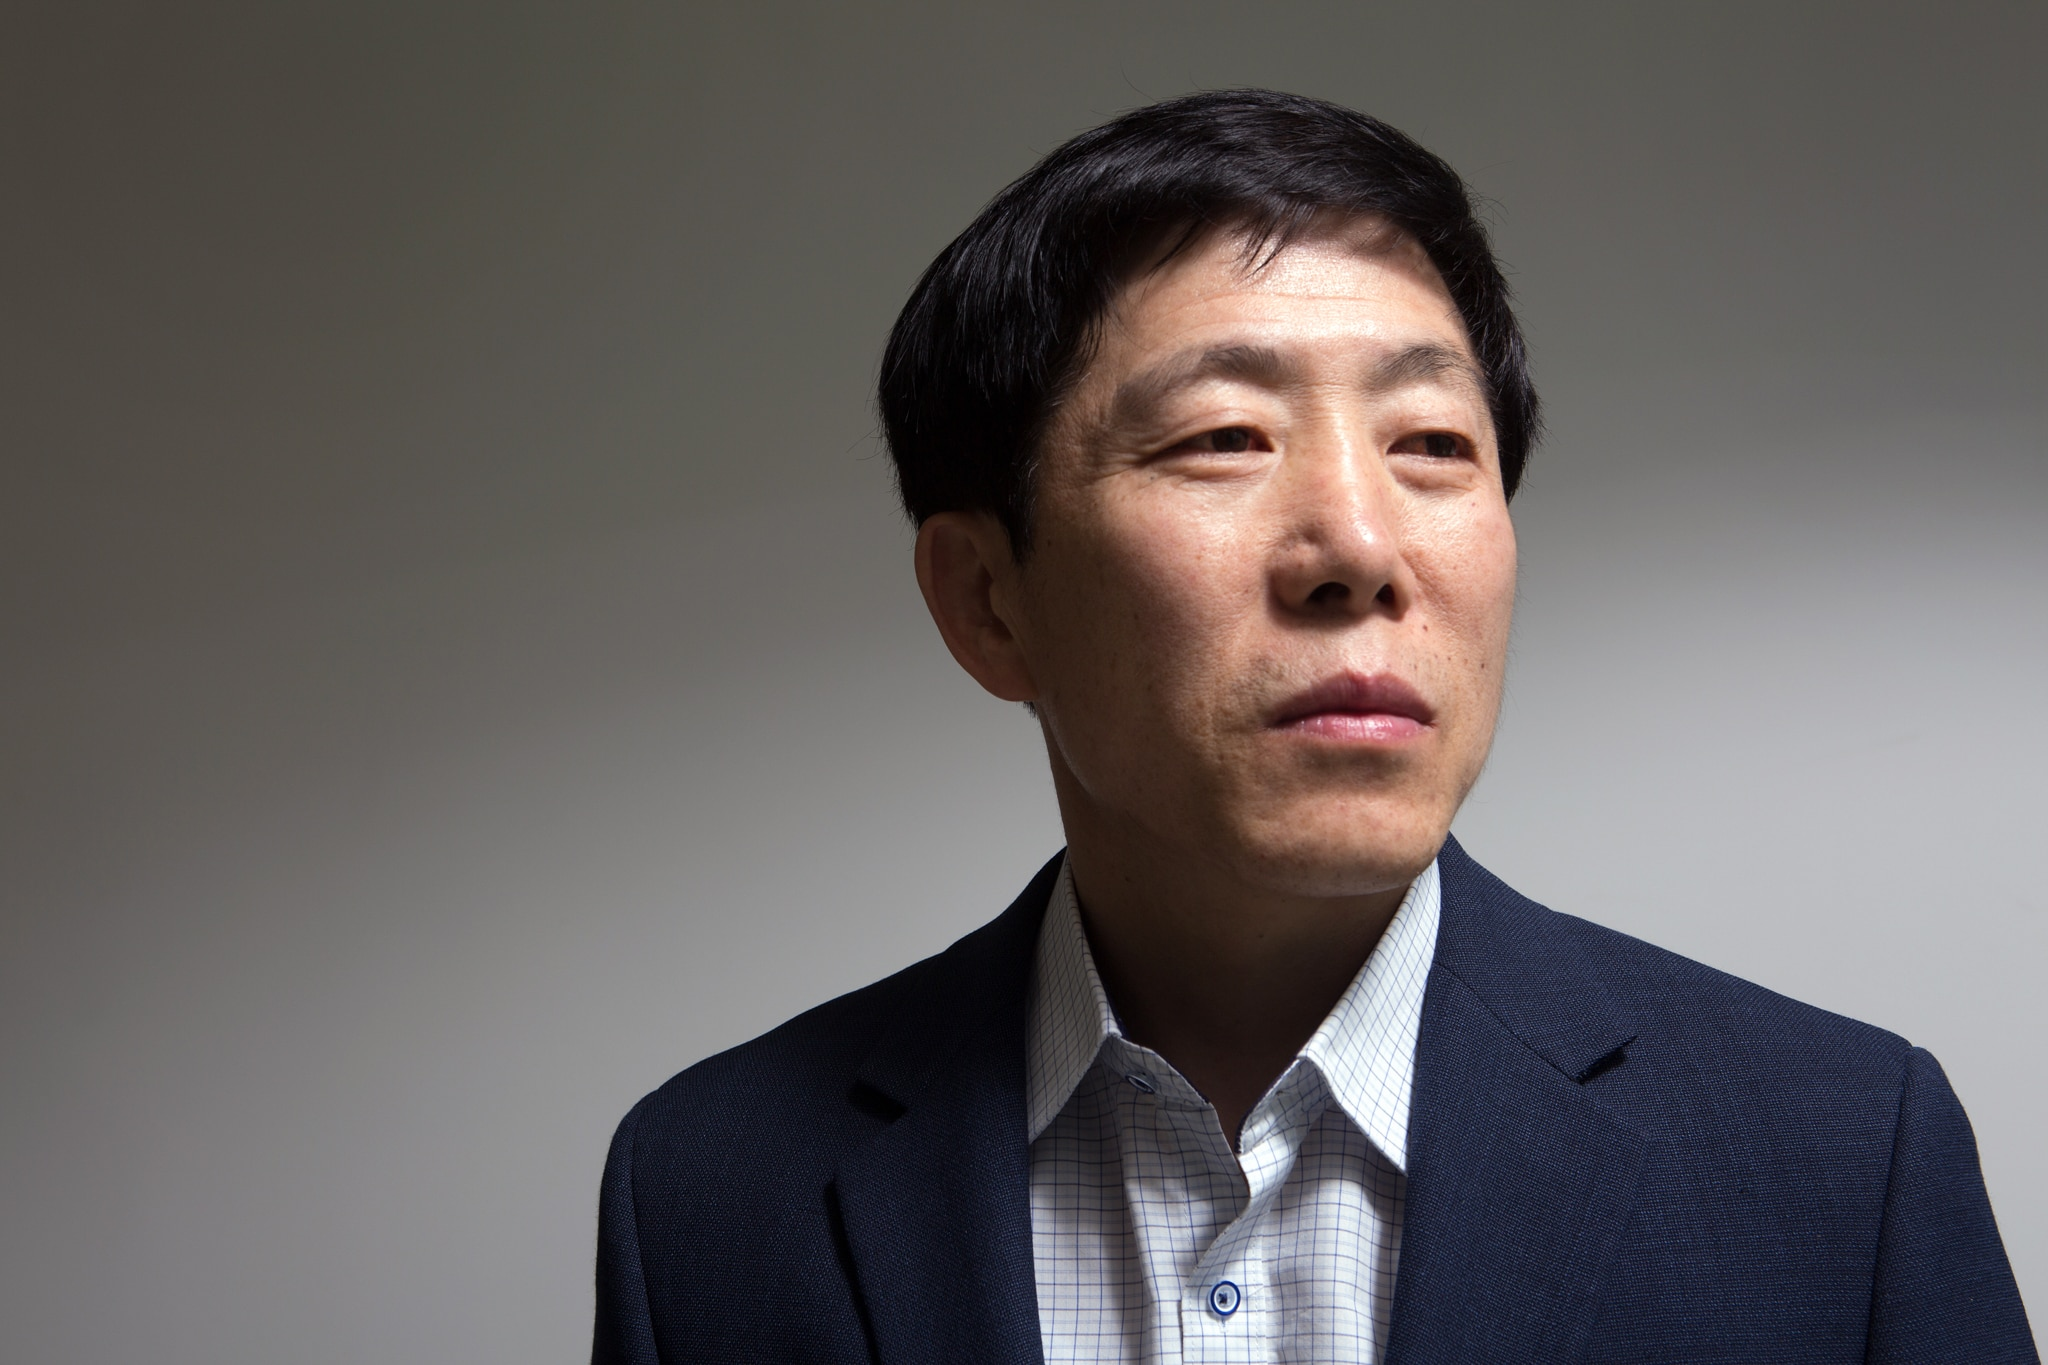 Portrait photo of Park Sang-hak (State Dept./D.A. Peterson)